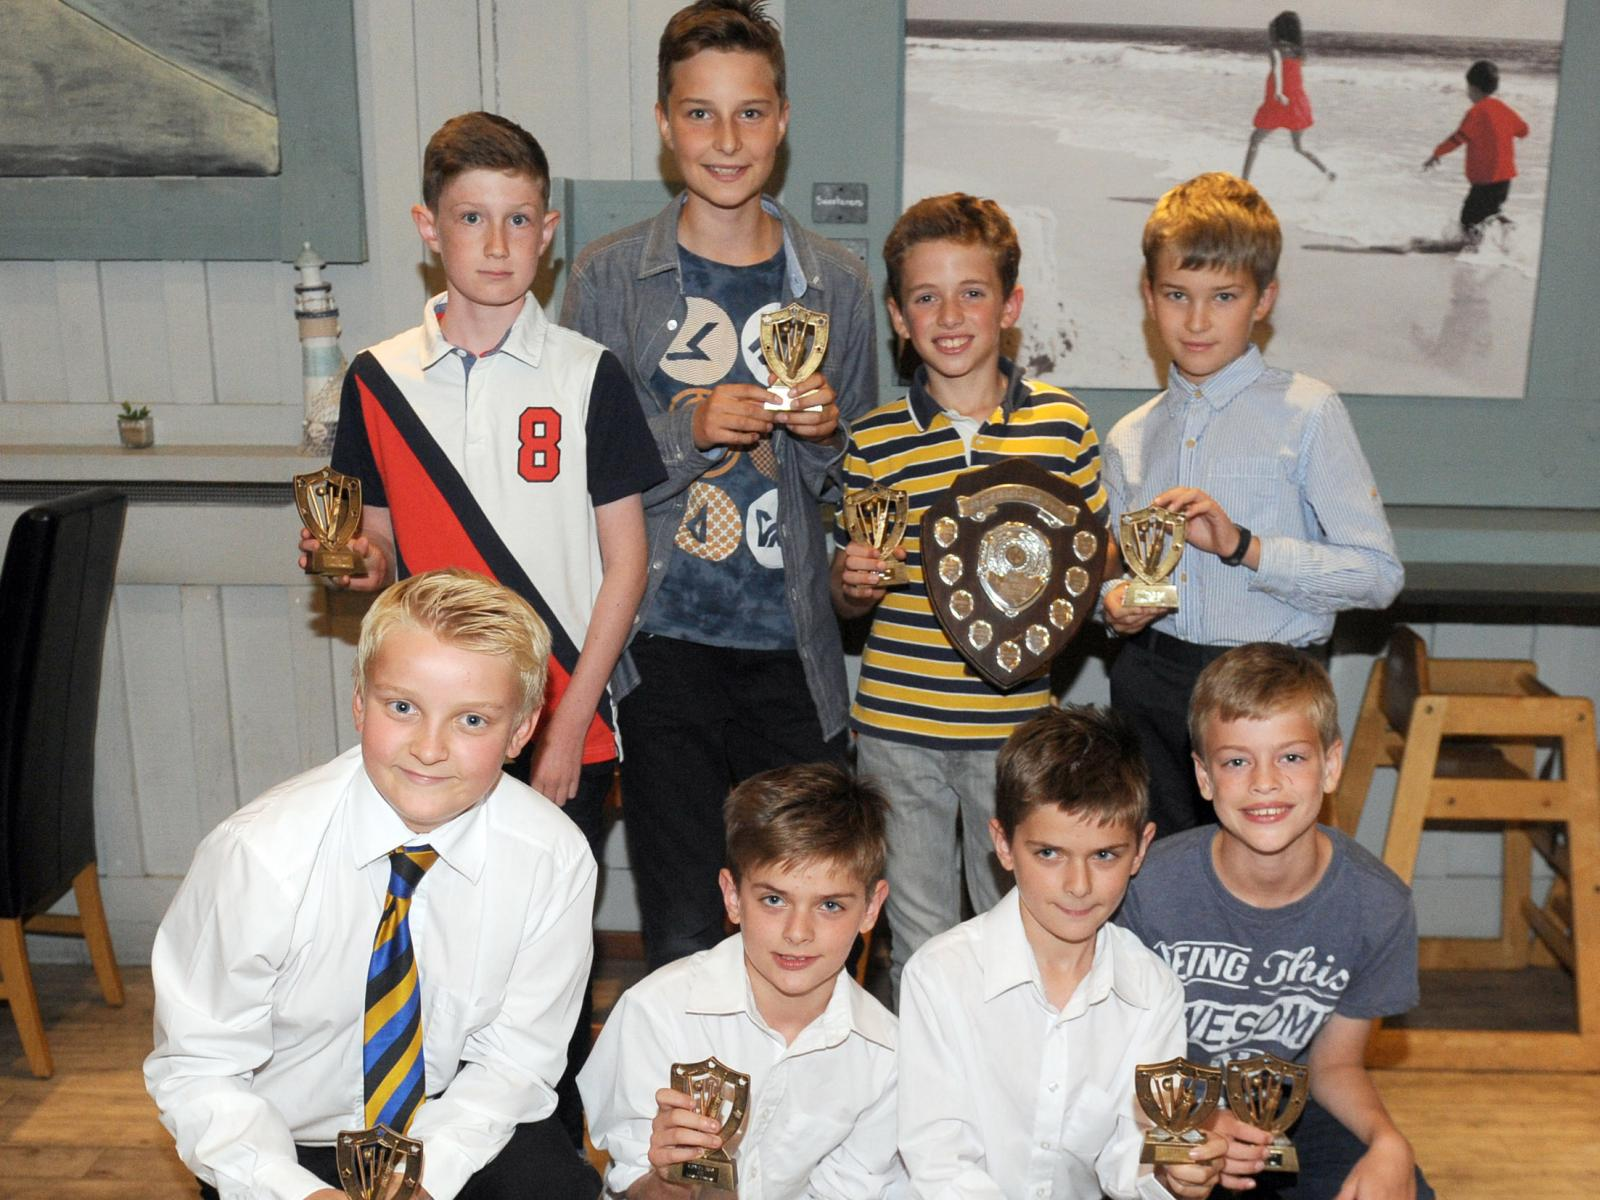 Ottery St Mary, who won the U11 Division